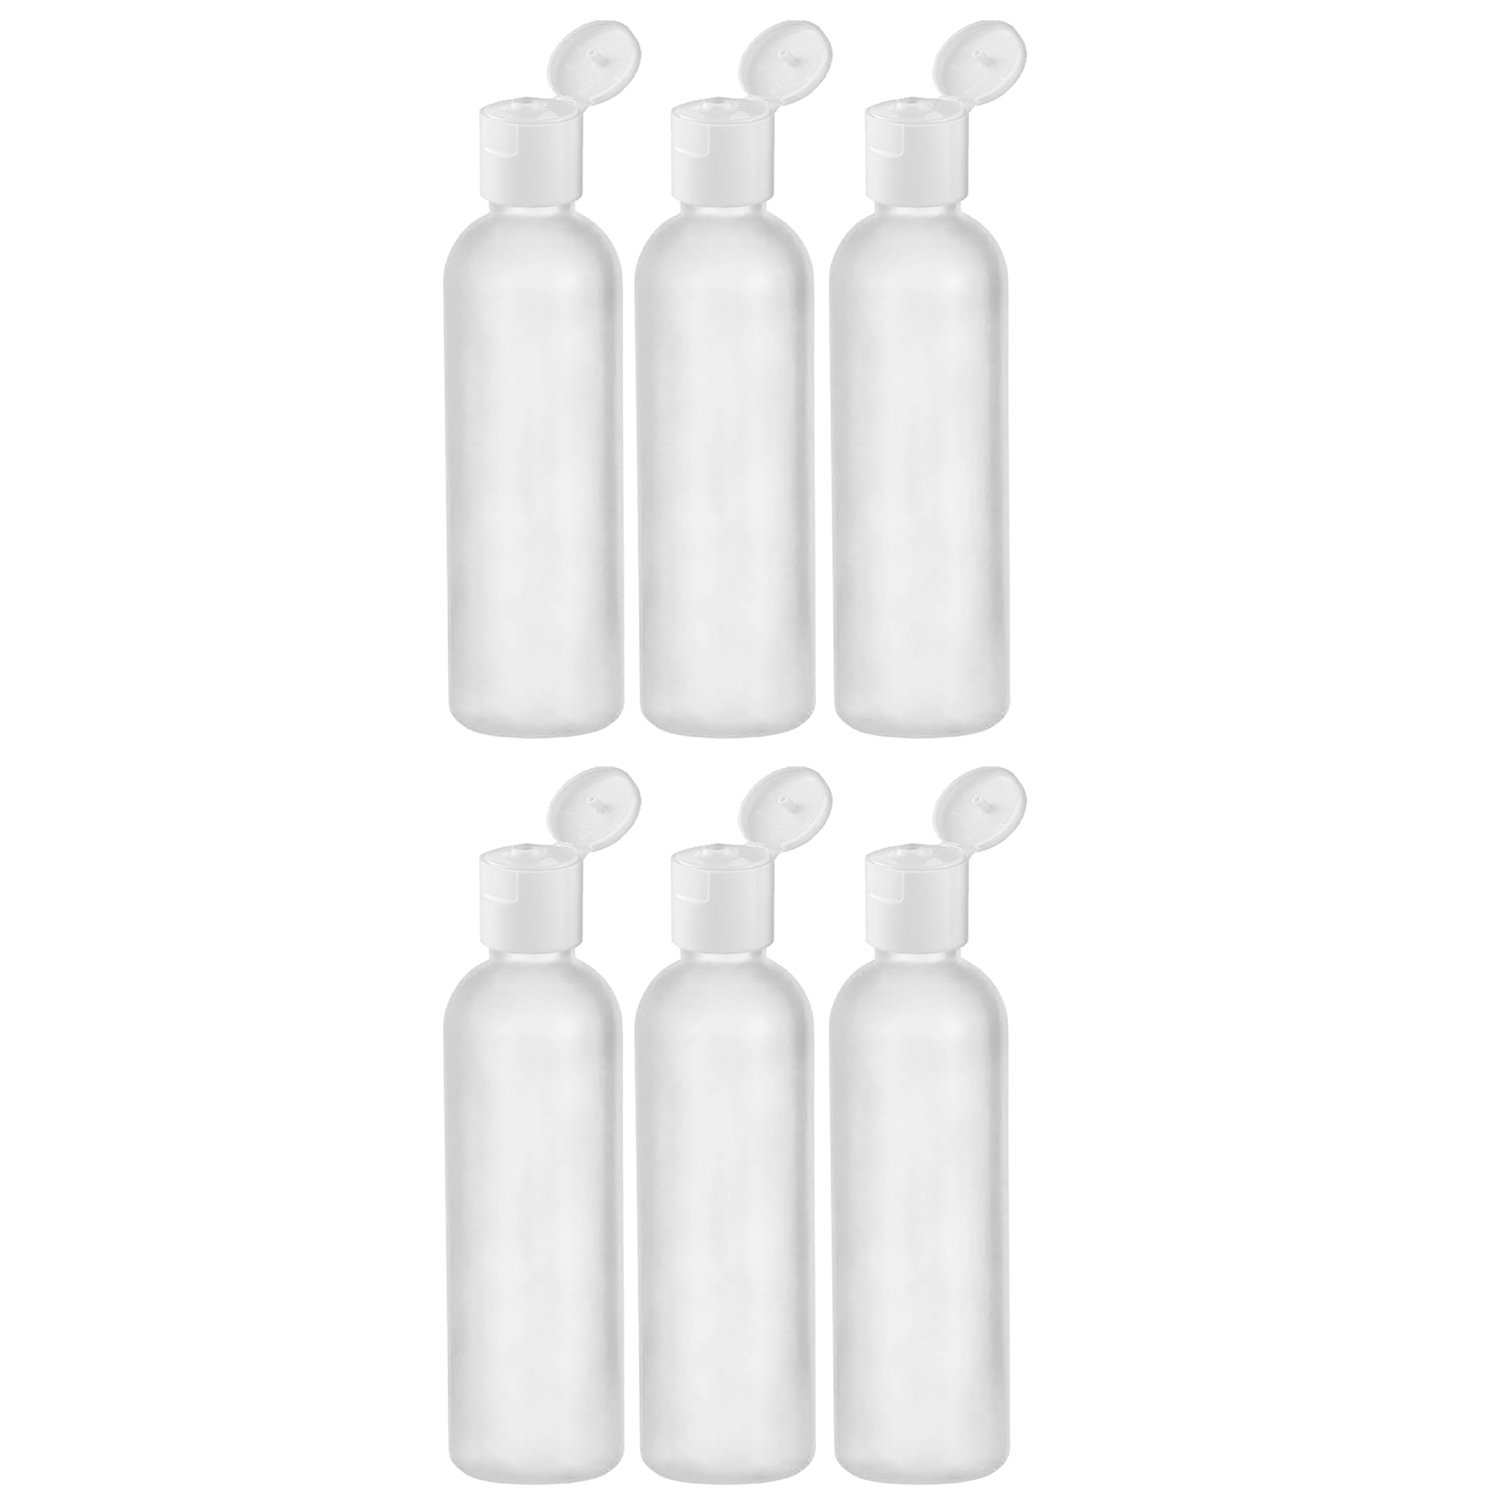 MoYo Natural Labs 2 oz Travel Bottle, TSA Approved Empty Travel Containers with Flip Caps, BPA Free HDPE Plastic Squeezable Toiletry/Cosmetic Bottles (6 Pack, Translucent White)